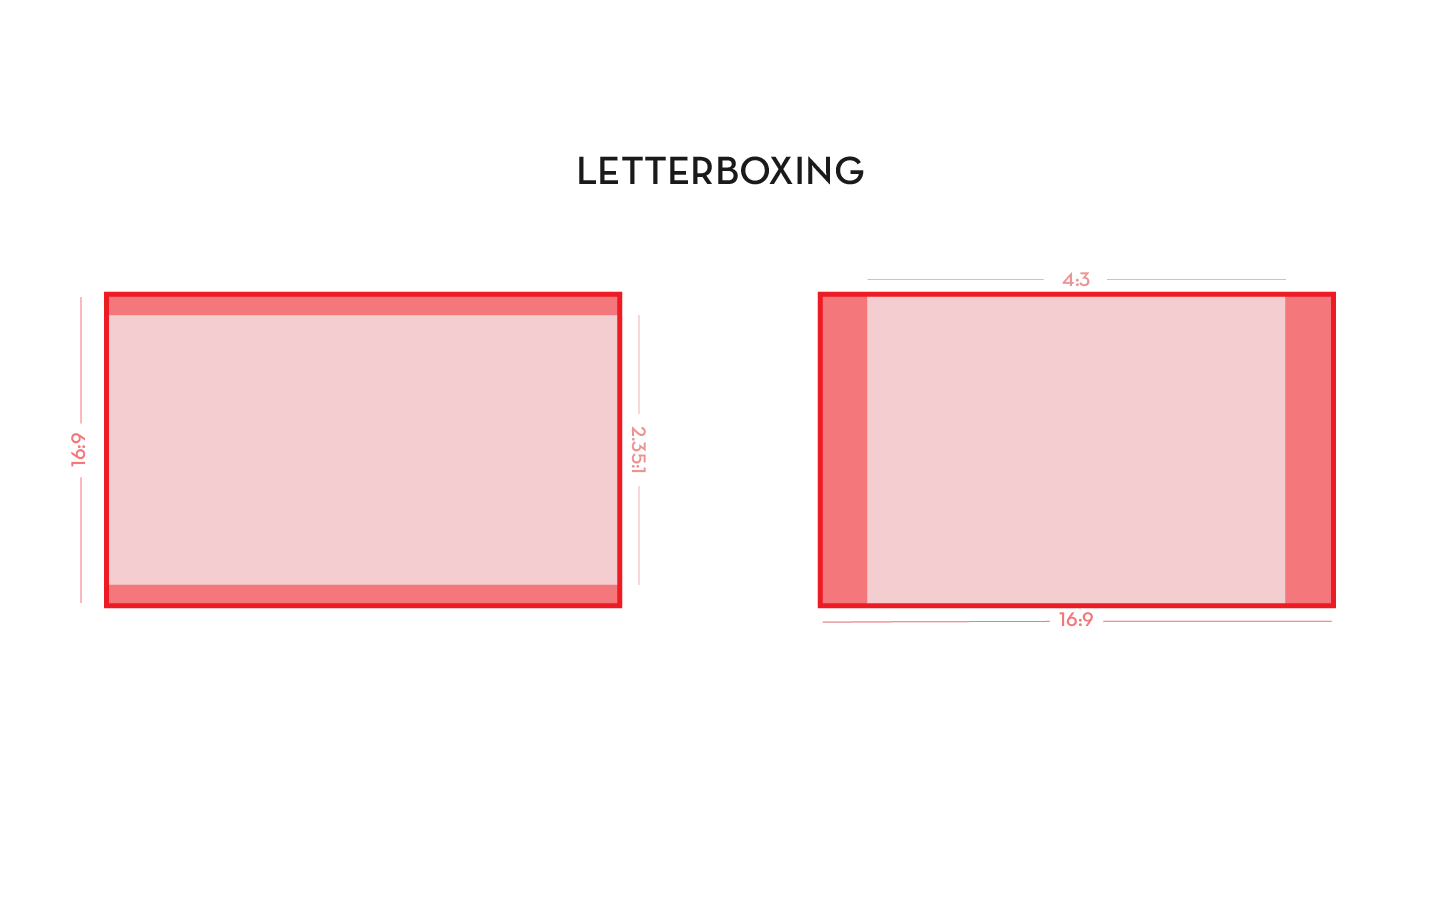 What aspect ratio is best for watching TV and films?.